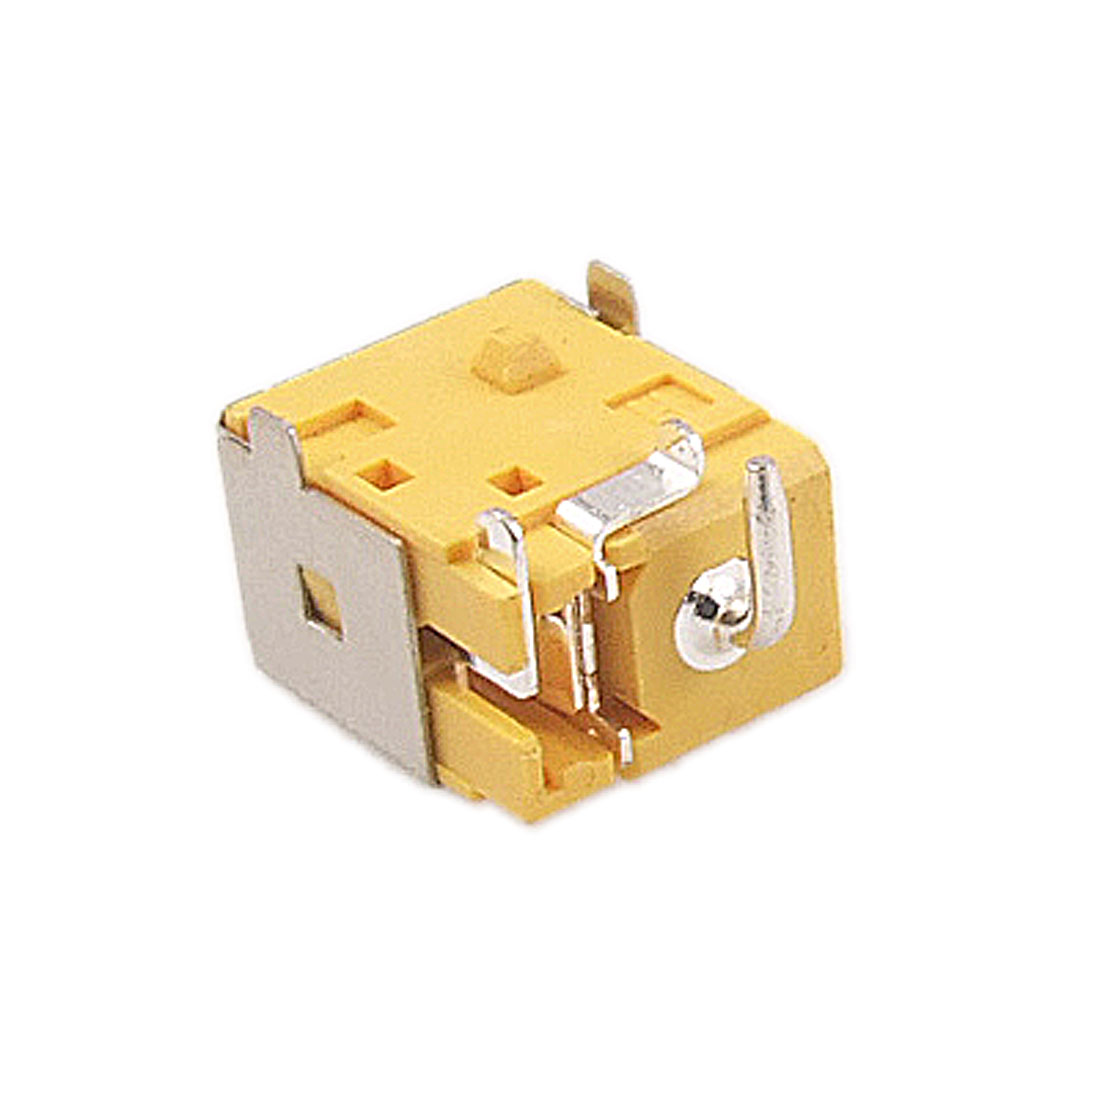 PJ088 Laptop 1.65mm Center Pin DC Power Supply Jack Socket for HP